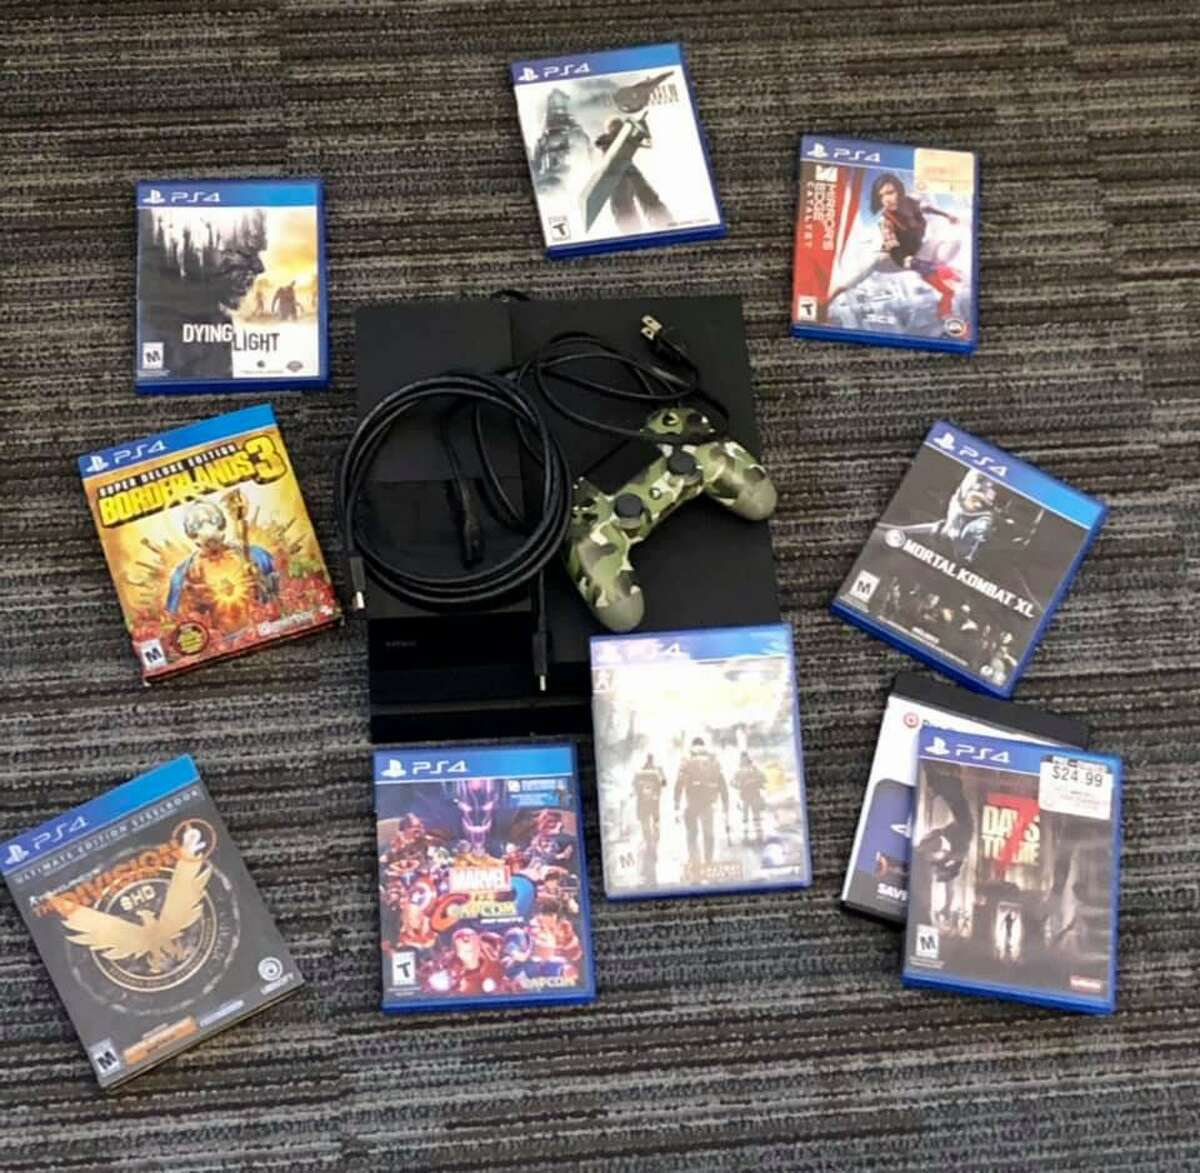 In just a few days, through public donations, the effort by Middletown police to help a New Britain family of three who lost everything in two successive fires has raised $400 in cash, pet food and supplies, $450 in various gift cards, and a slew of PlayStation 4 games.